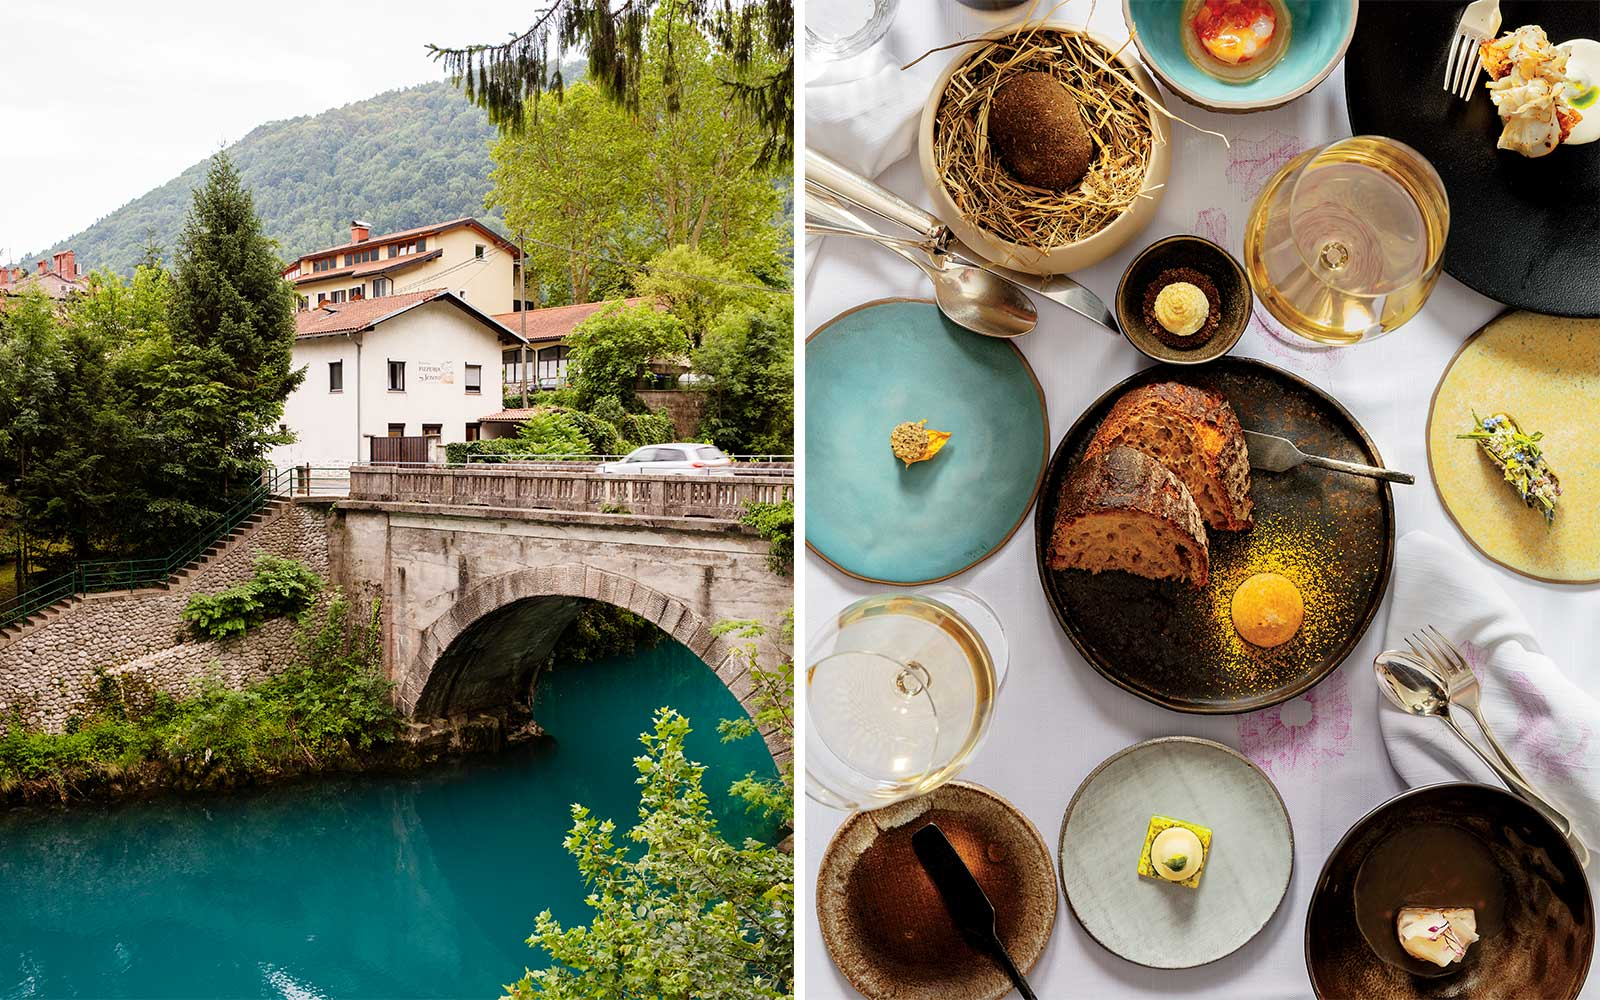 Slovenia's Soča Valley Has Hiking, River Rafting, Skiing, and One of the Best Tasting Menus in the World